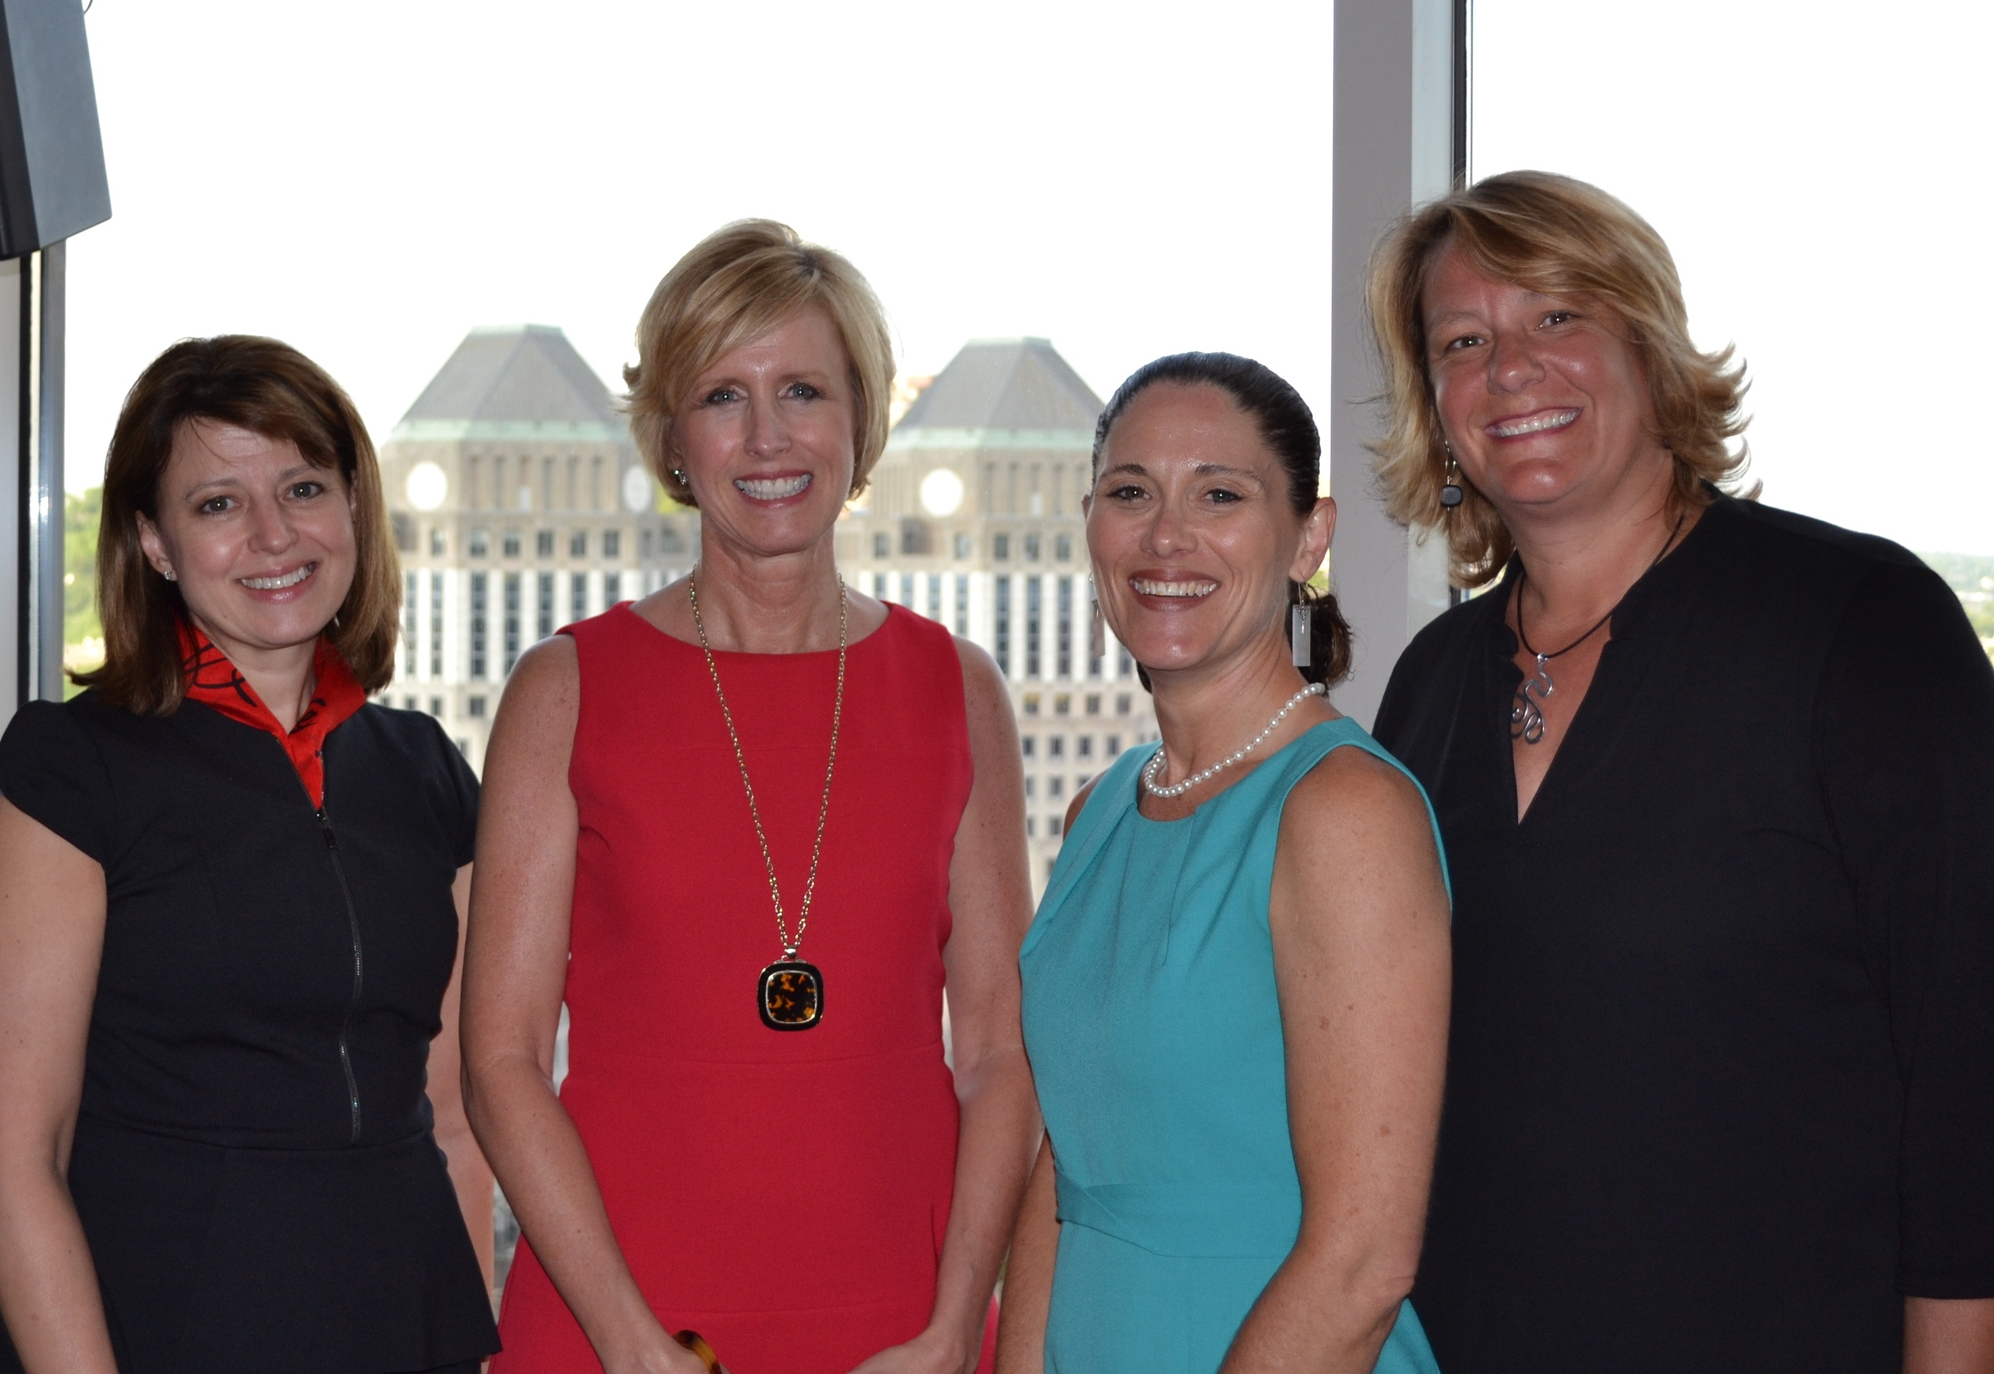 Pictured above: Lee Stautberg, Tiffany Adams, Pam Weber, and Nancy Graeter